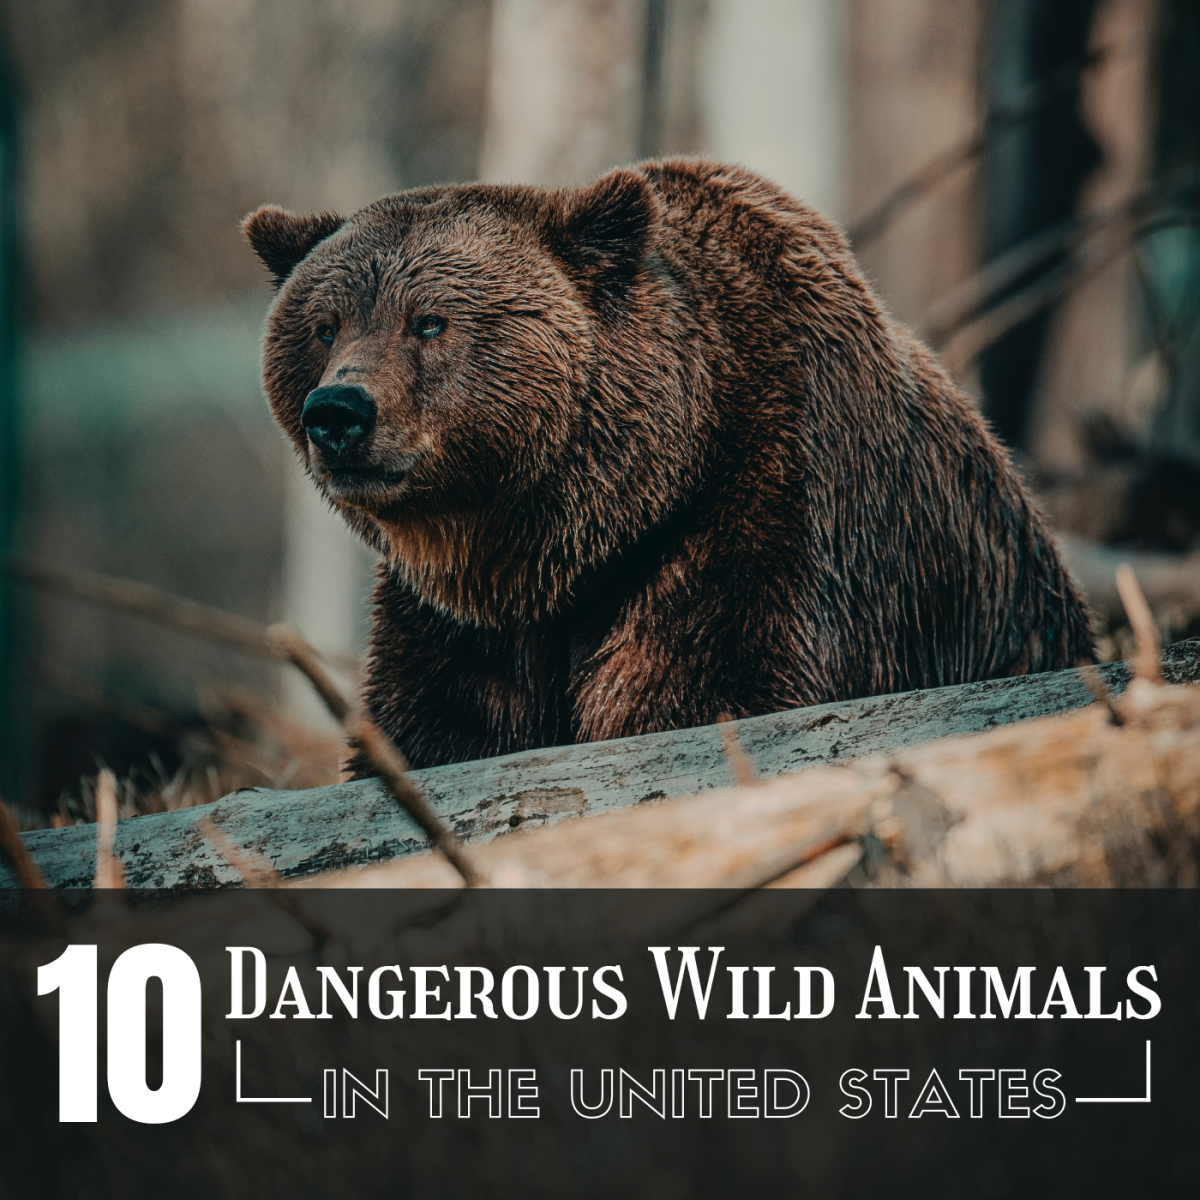 The U.S. is home to many wild predators, but which are the most dangerous?